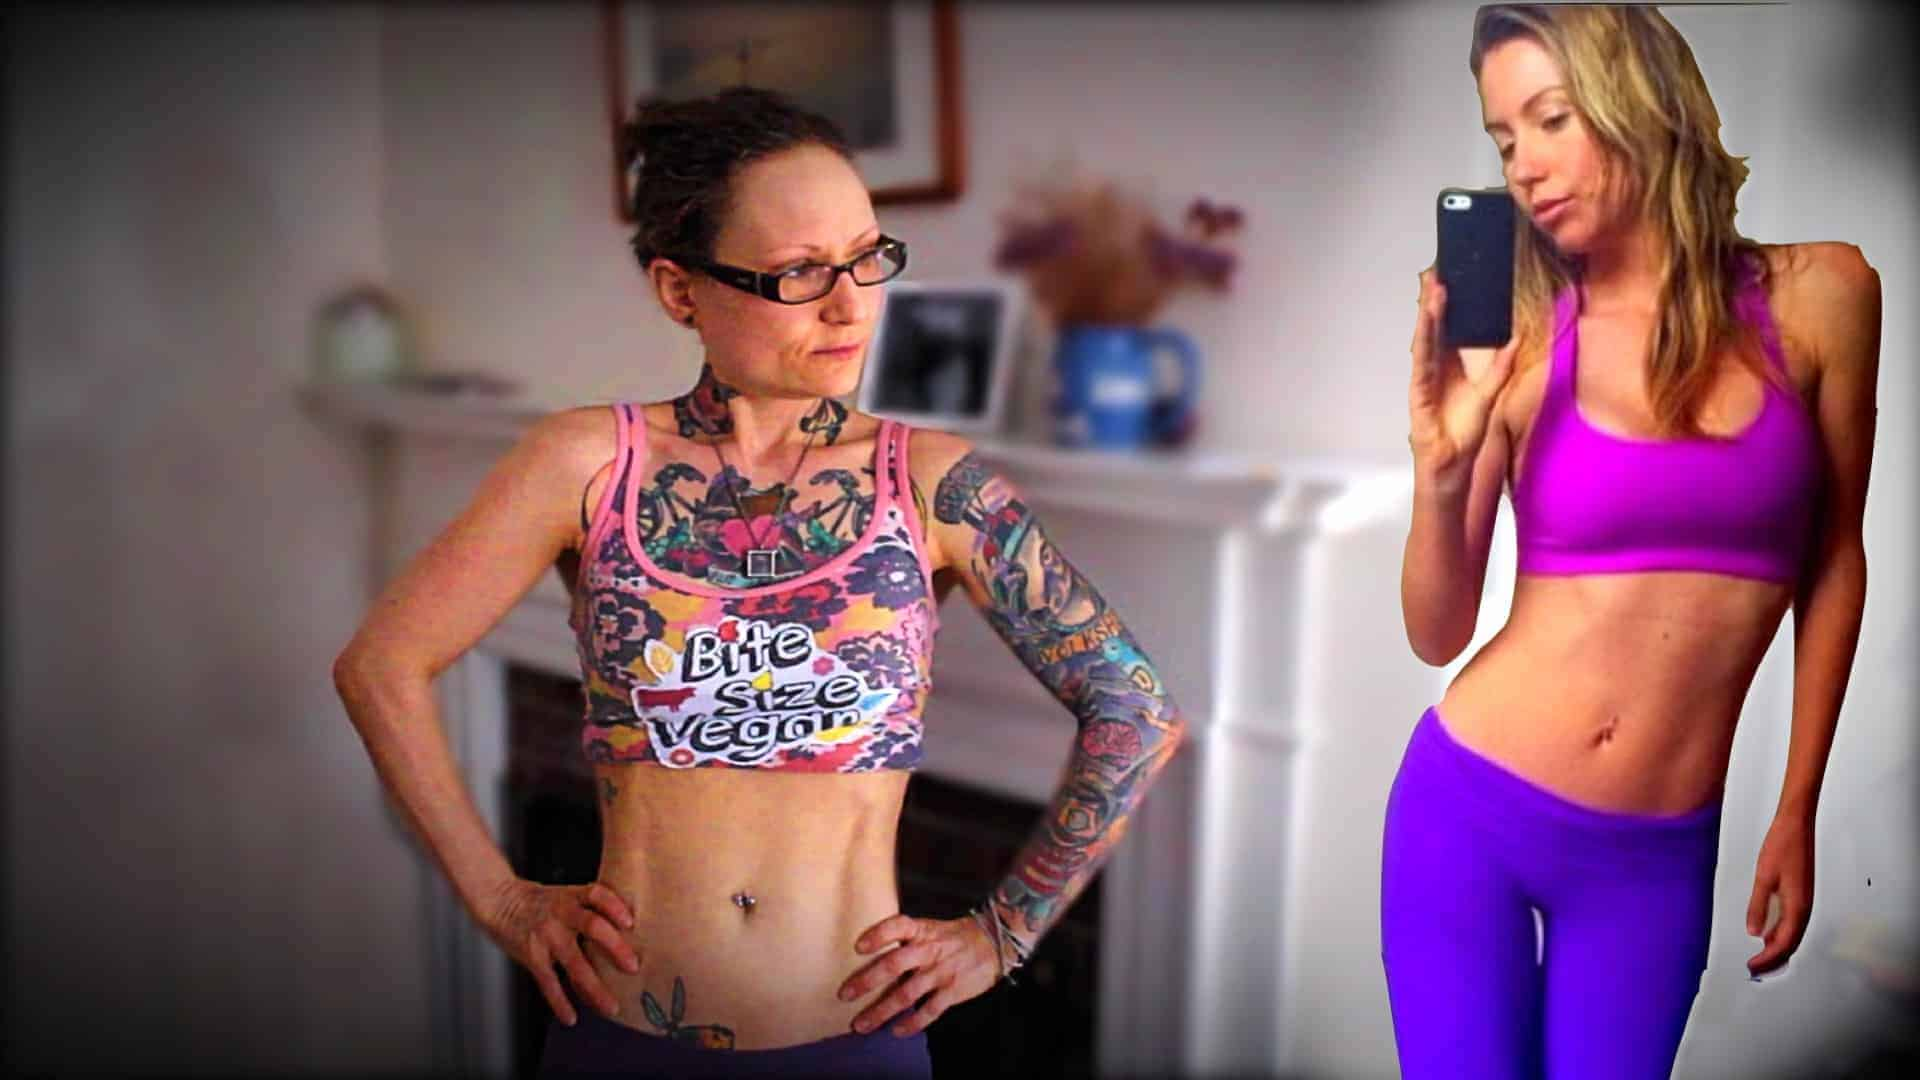 Emily Moran Barwick of Bite Size Vegan is shown in an exercise outfit. She is looking towards her left as if looking at the merged image of Freelee the Banana Girl, also in an exercise outfit.